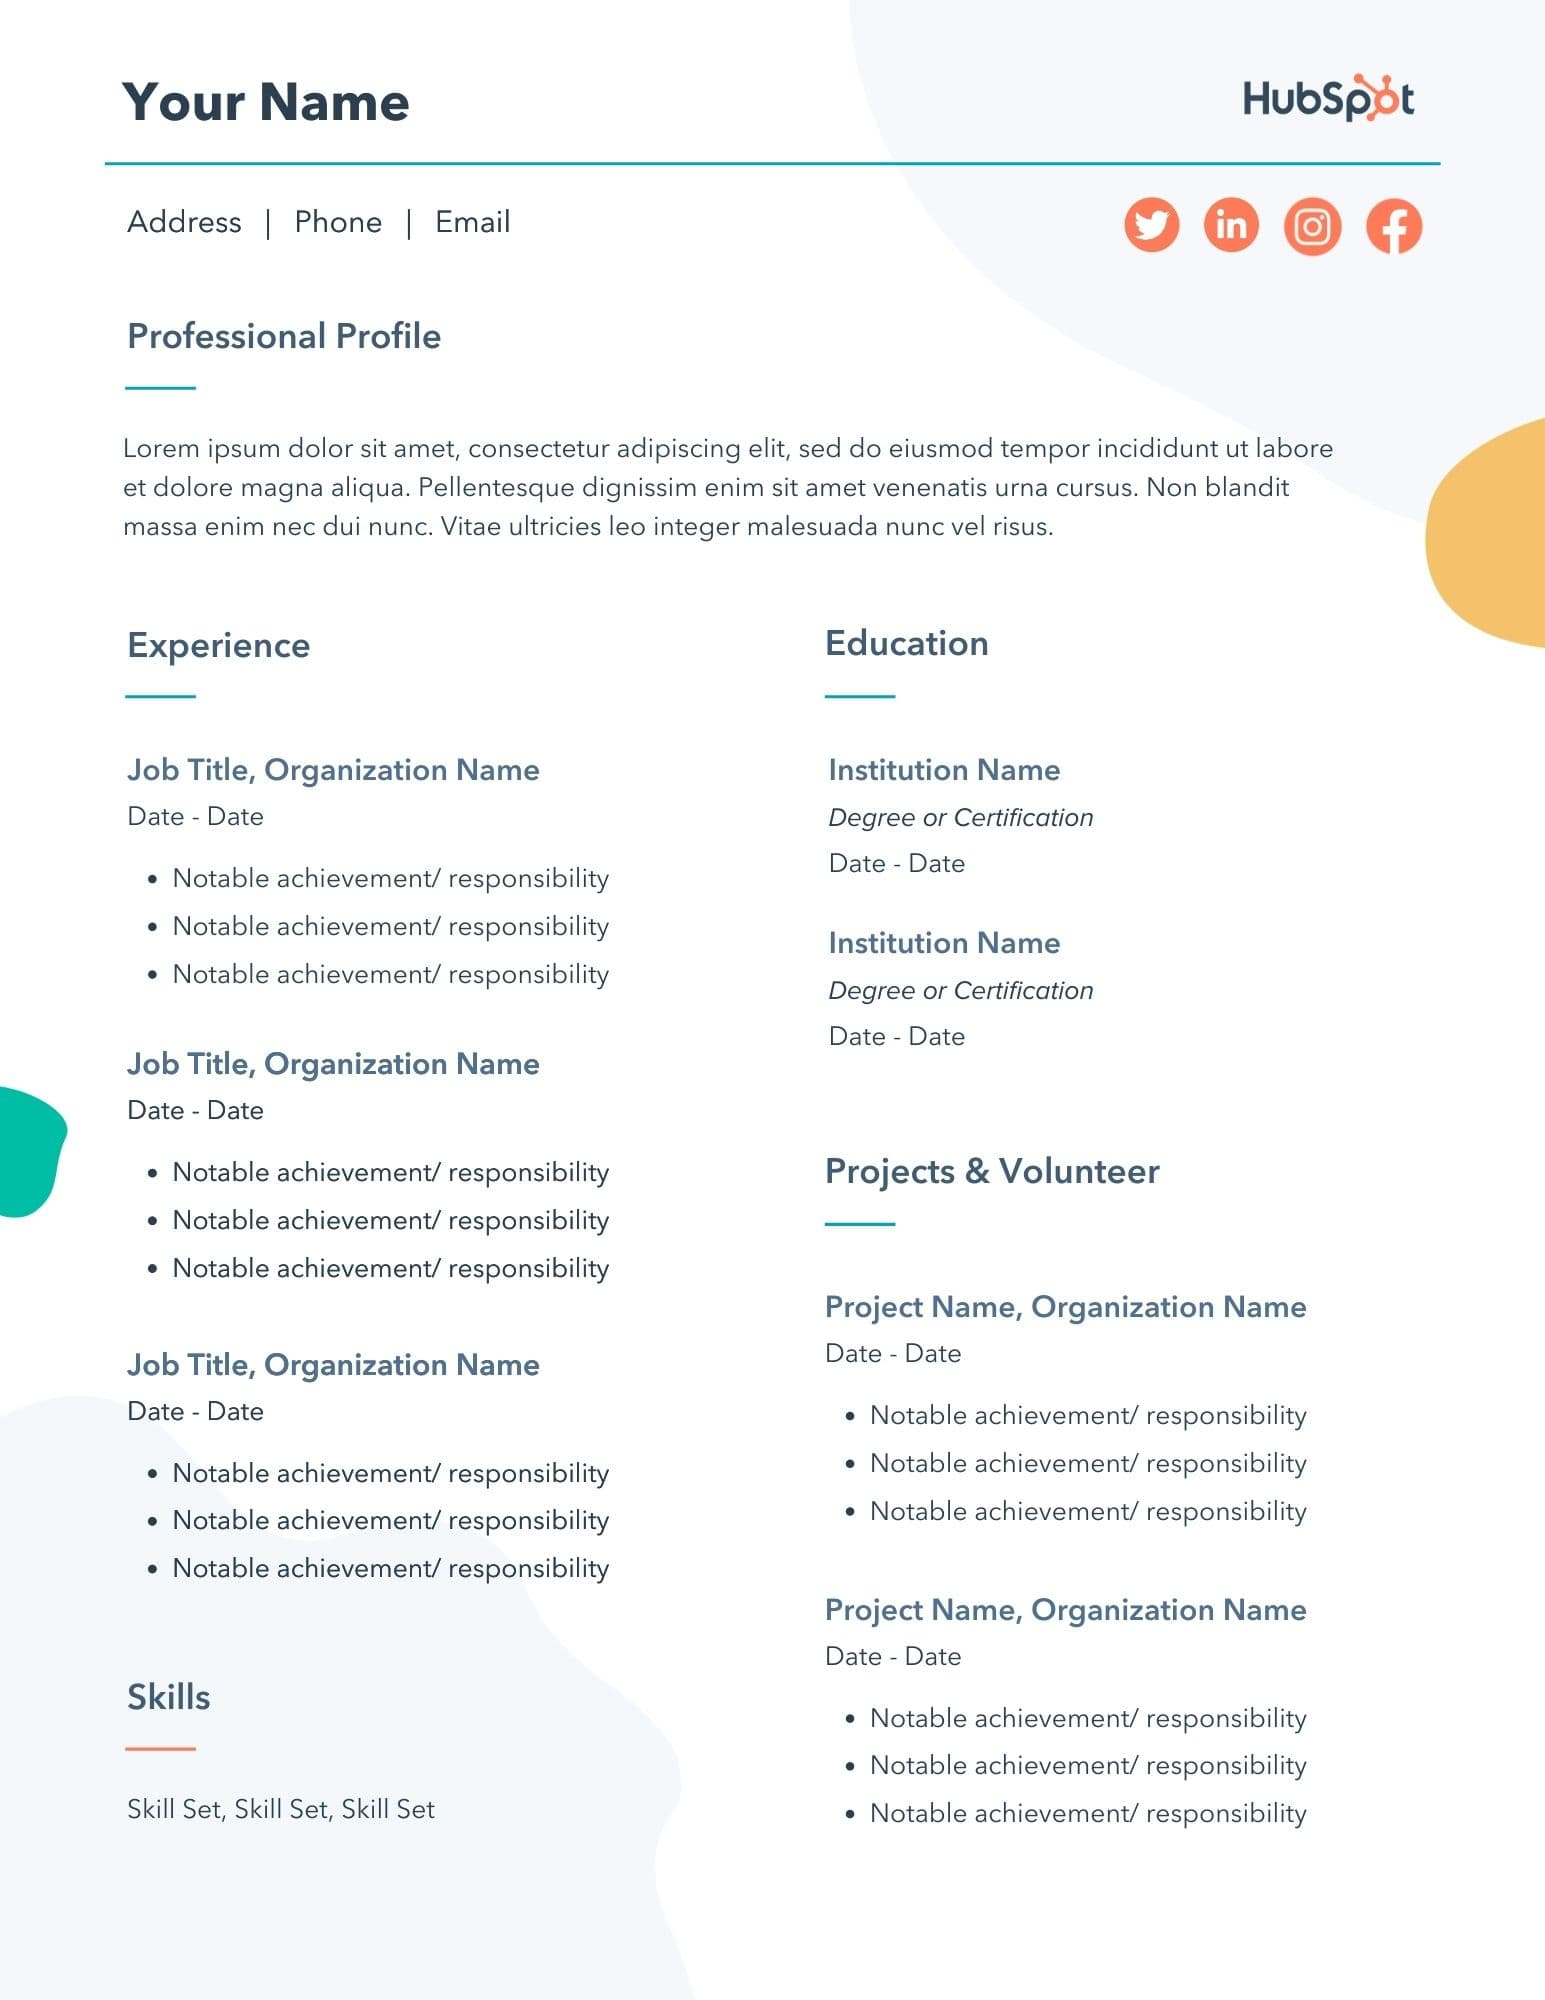 free resume templates for microsoft word to make your own simple business template Resume Simple Business Resume Template